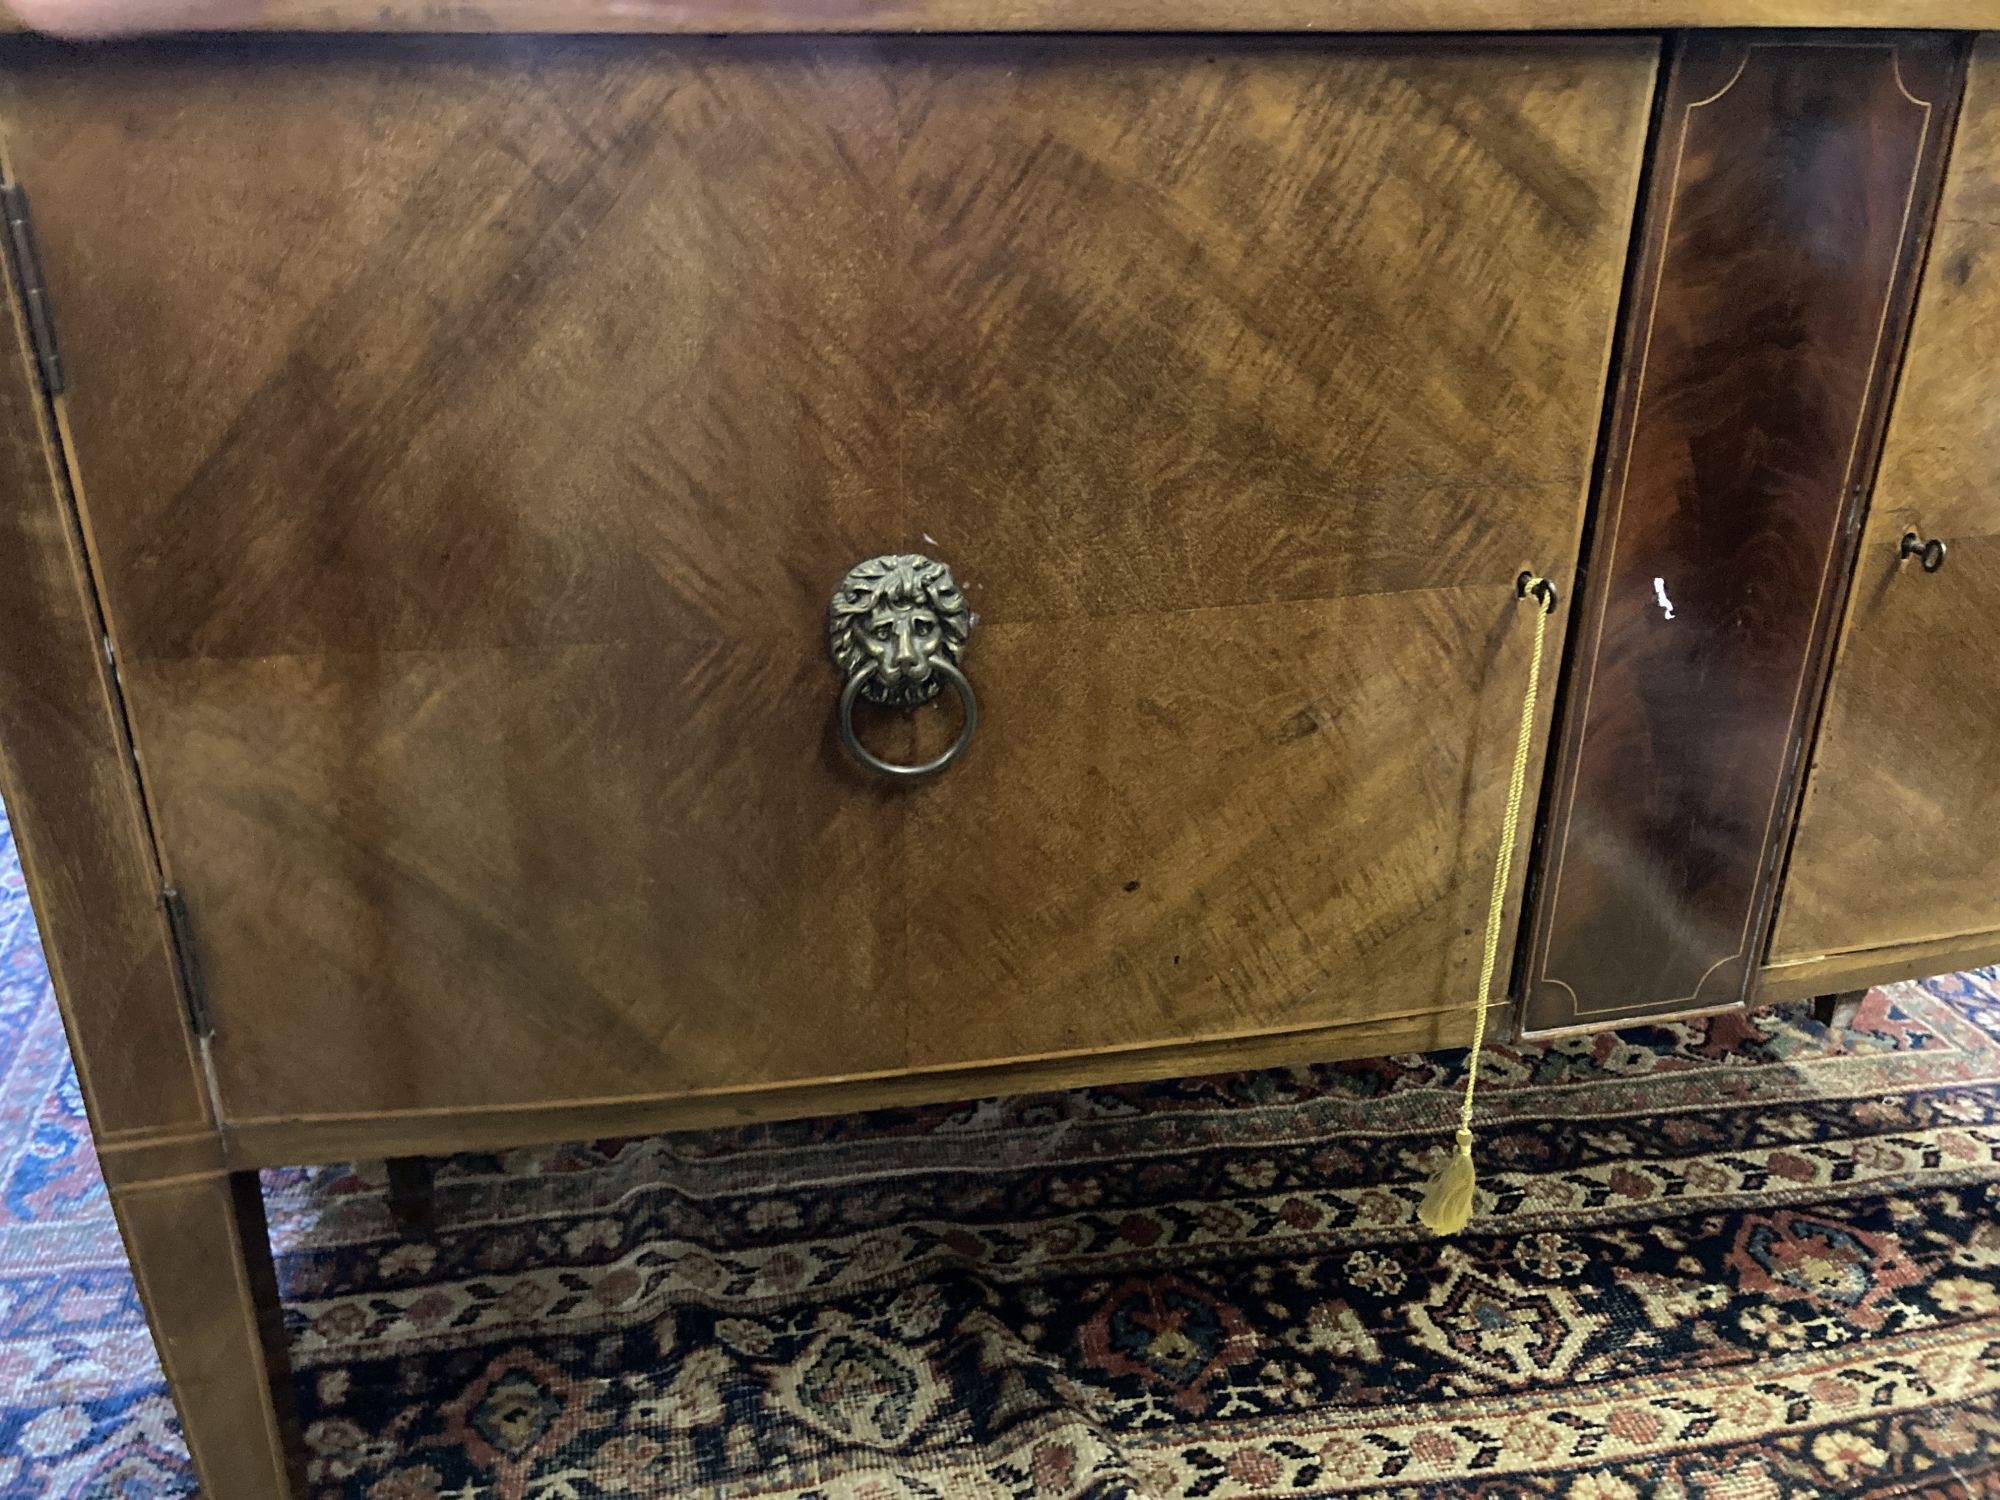 An Edwardian mahogany bow fronted sideboard, length 137cm, depth 60cm, height 91cm - Image 6 of 7